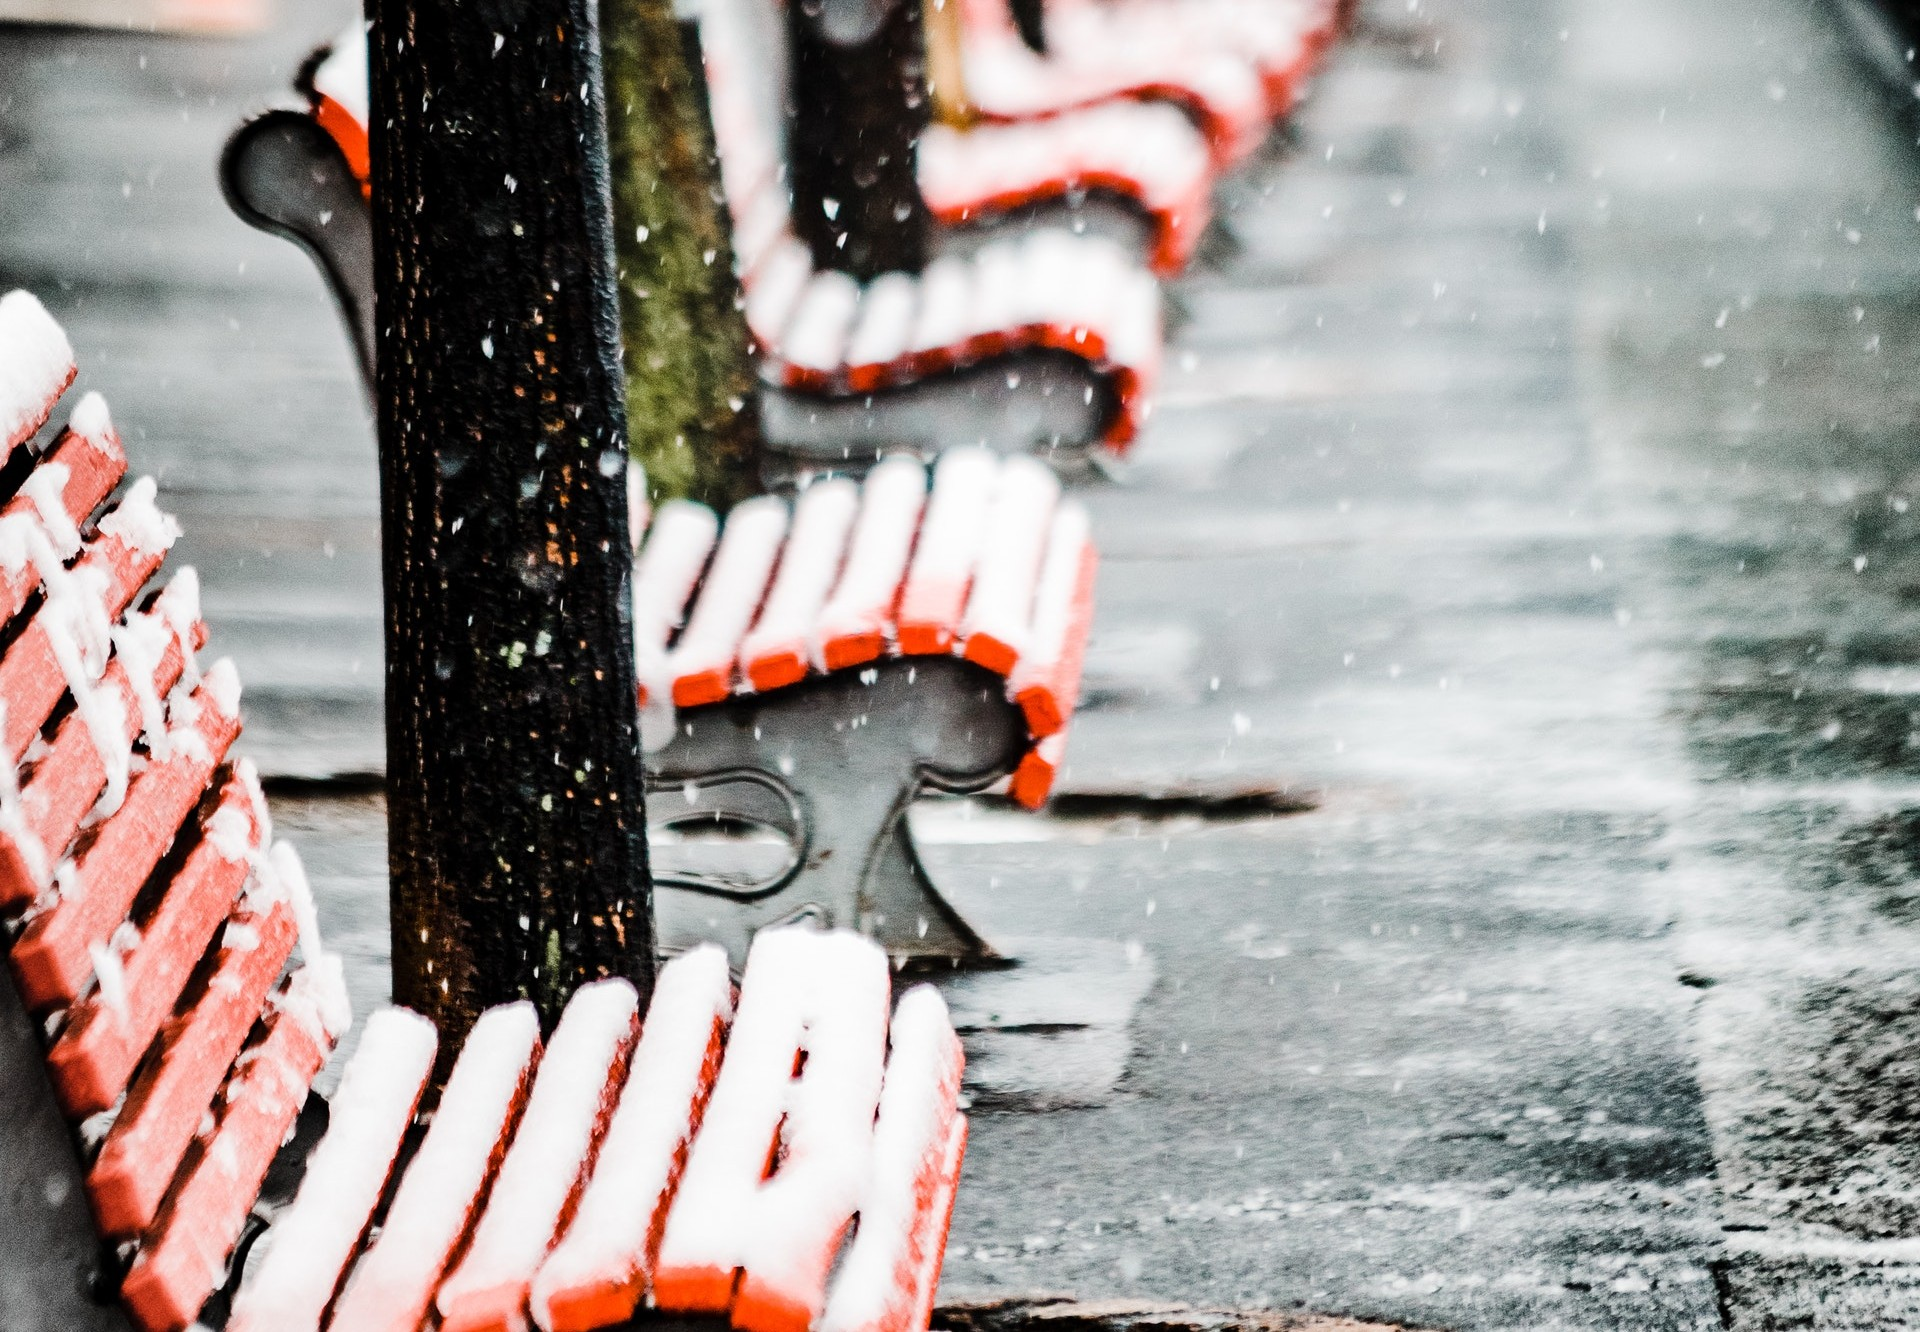 chairs-covered-in-snow-1866690.jpg